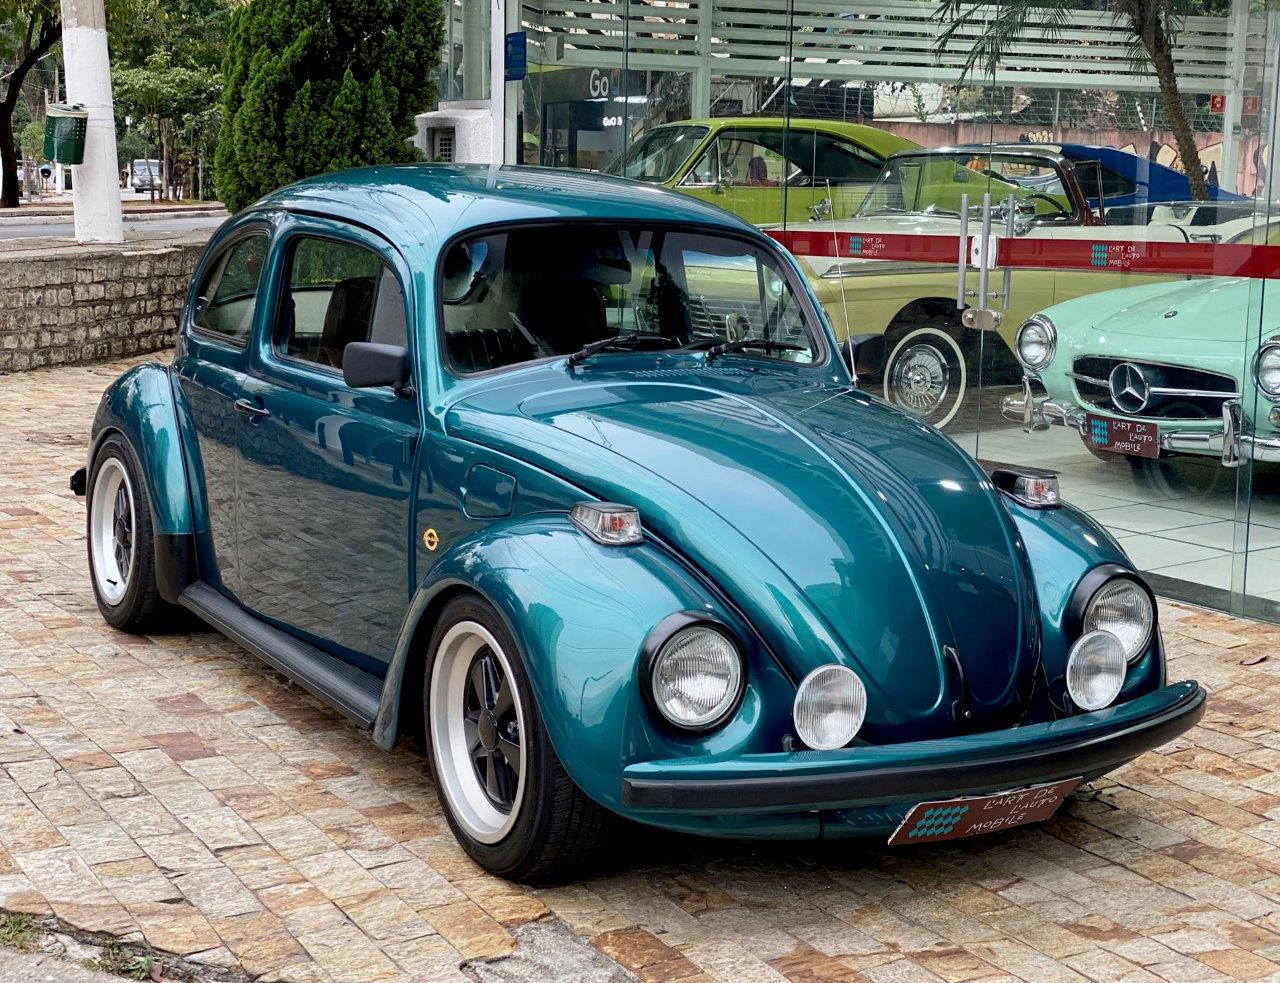 VW FUSCA SÉRIE OURO - 1996 Image